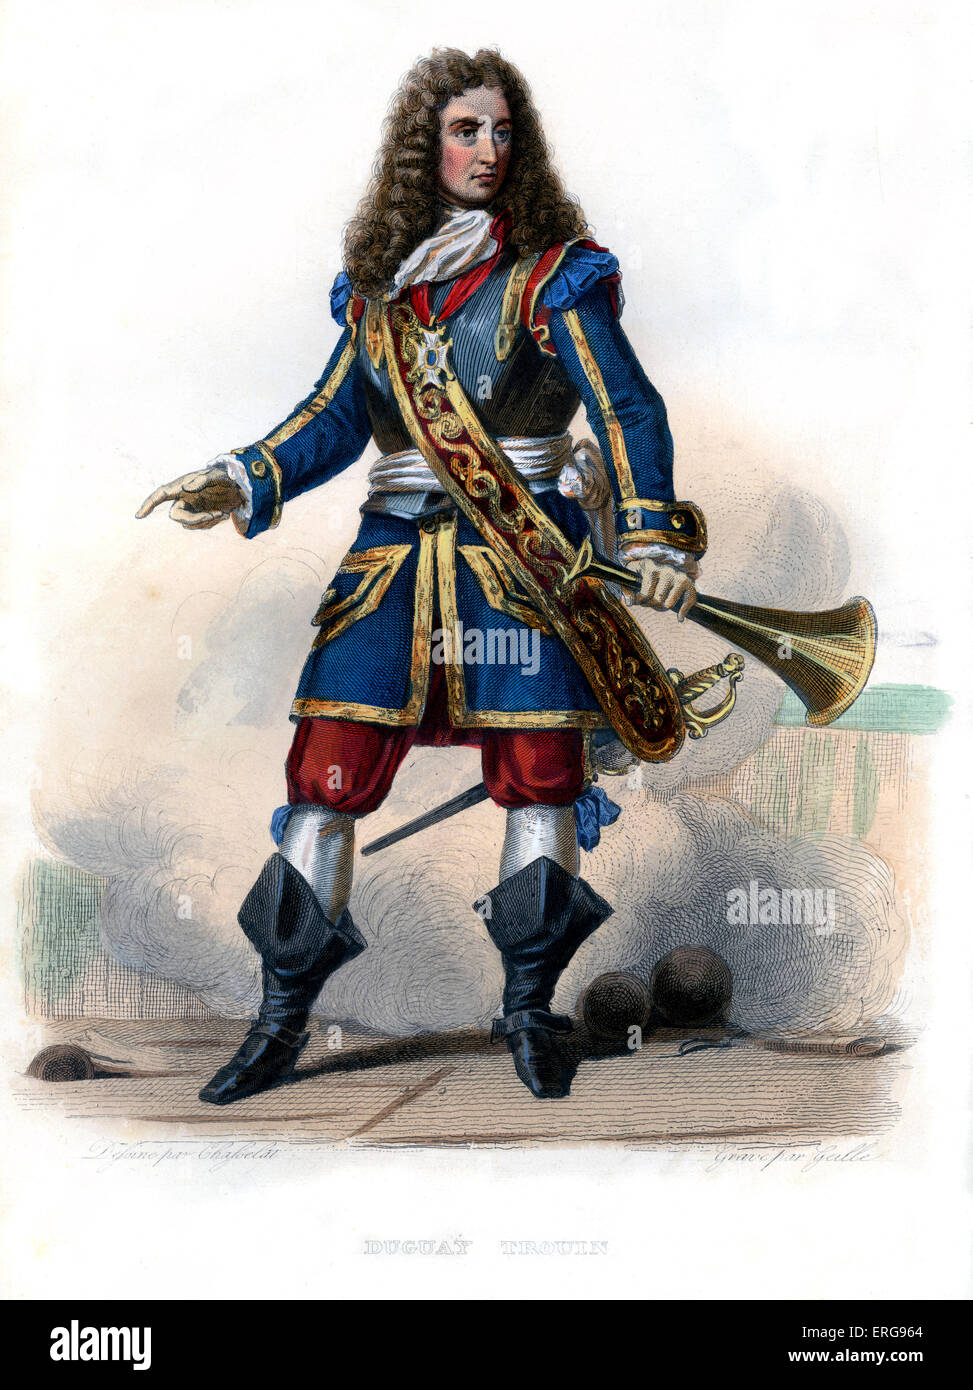 René Trouin, Sieur du Gué, usually called René Duguay-Trouin. Famous French corsair /privateer of - Stock Image